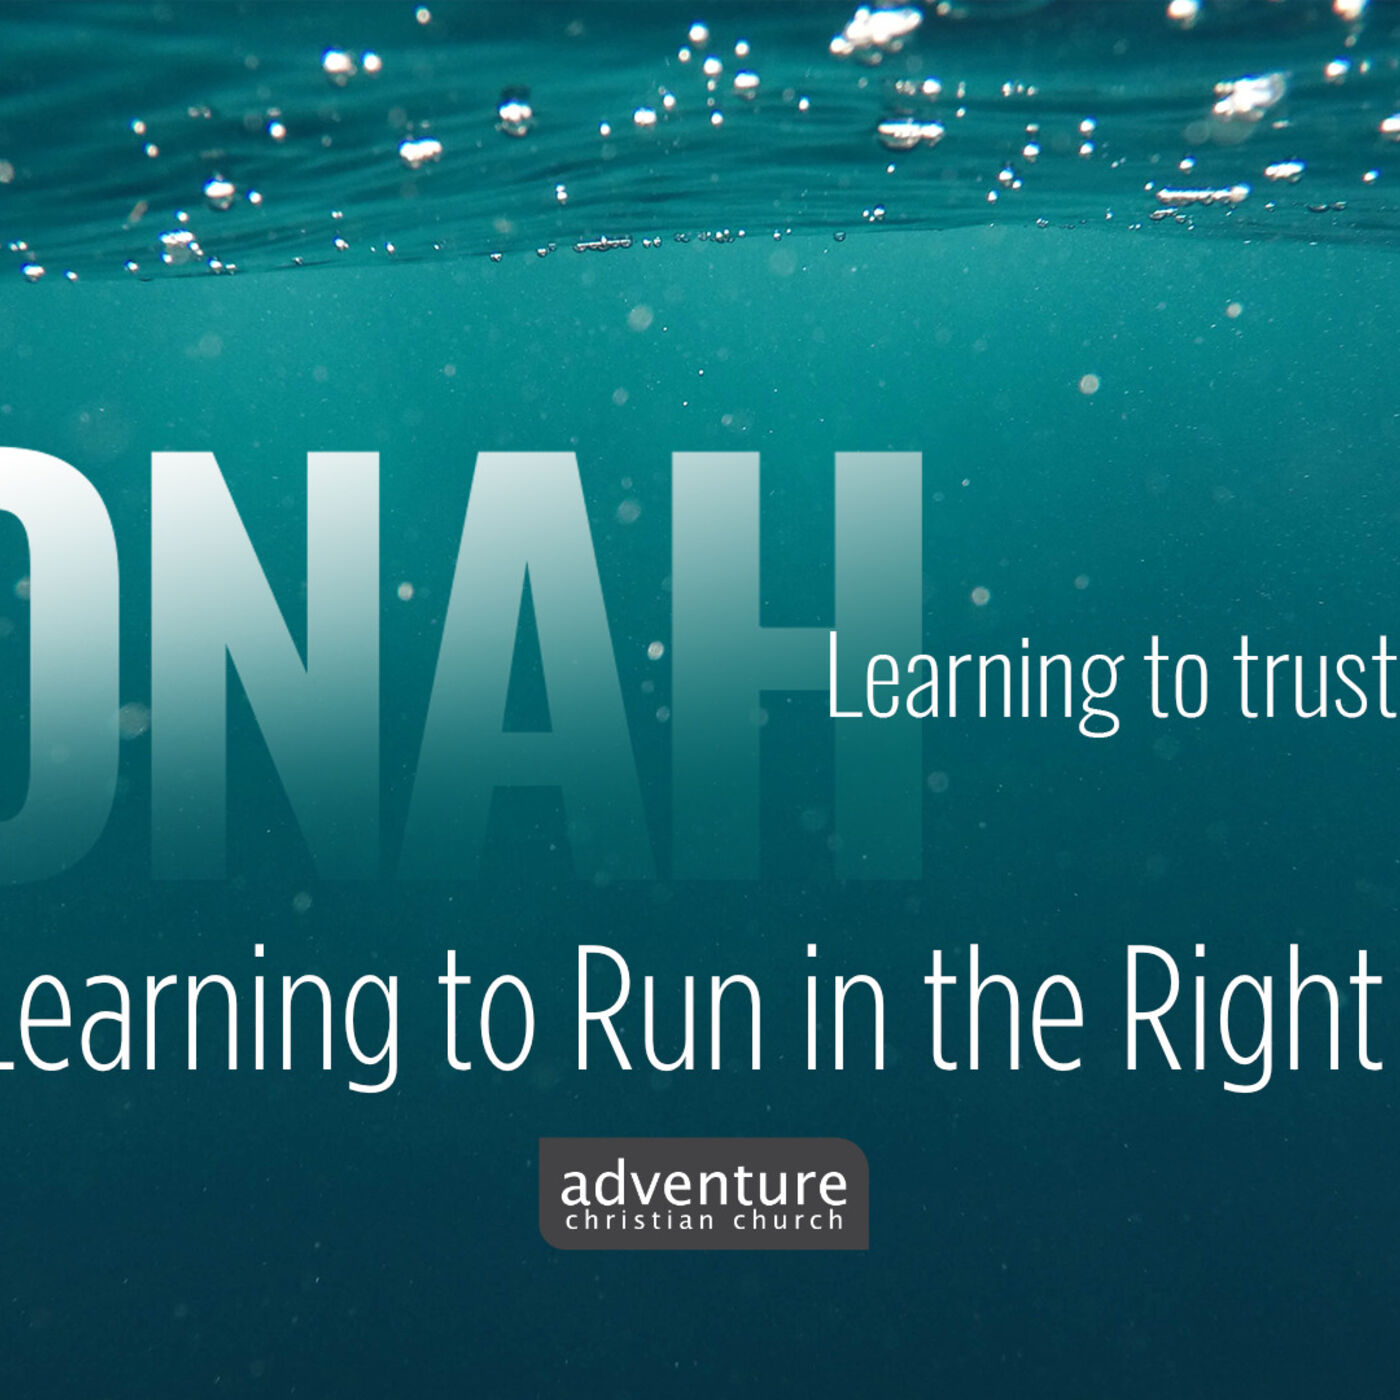 Jonah - Week 2: Learning to Run in the Right Direction